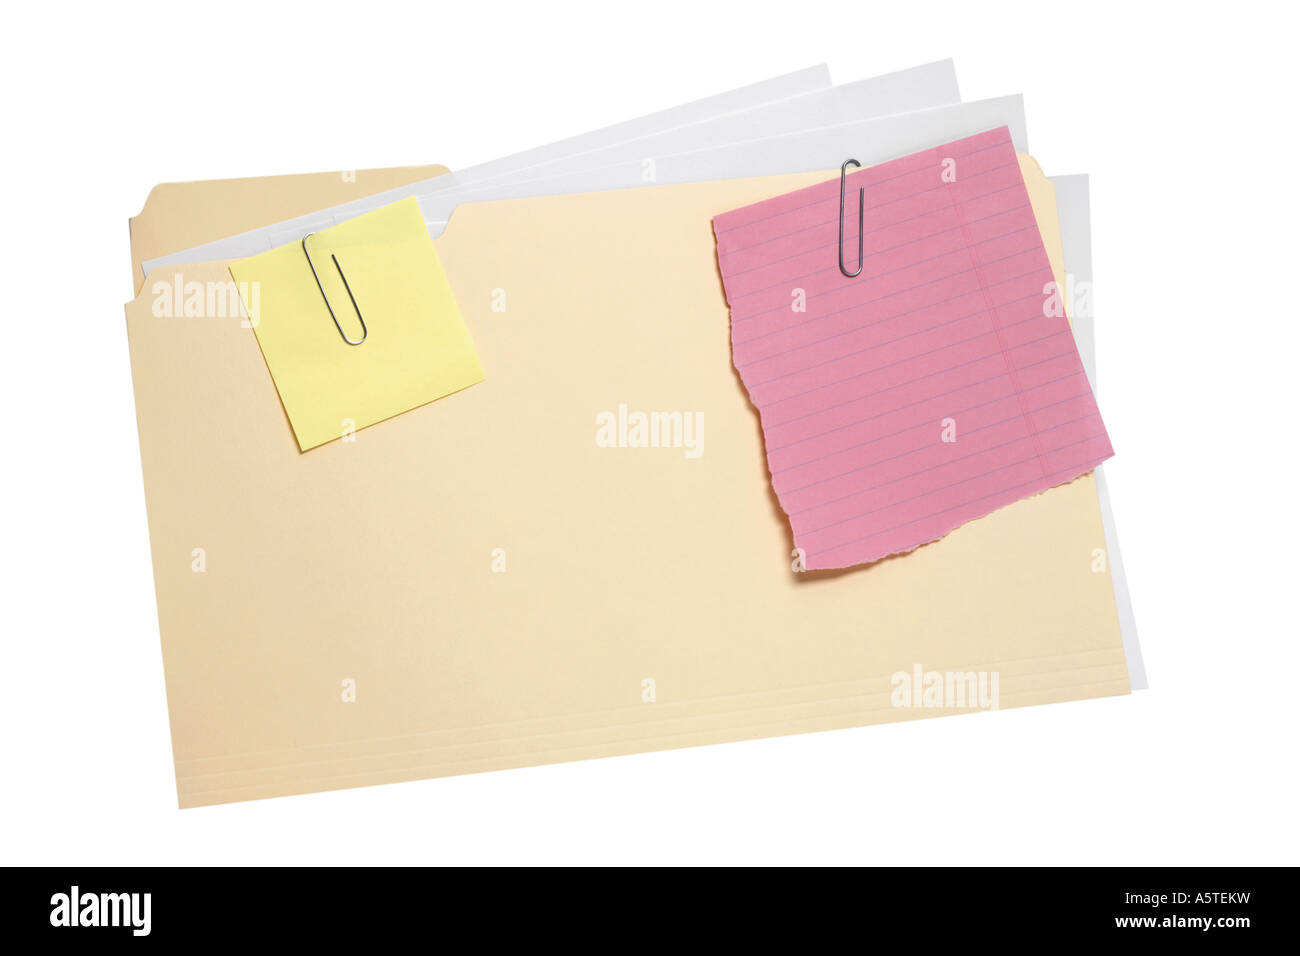 File Folder with notes cut out on white background - Stock Image